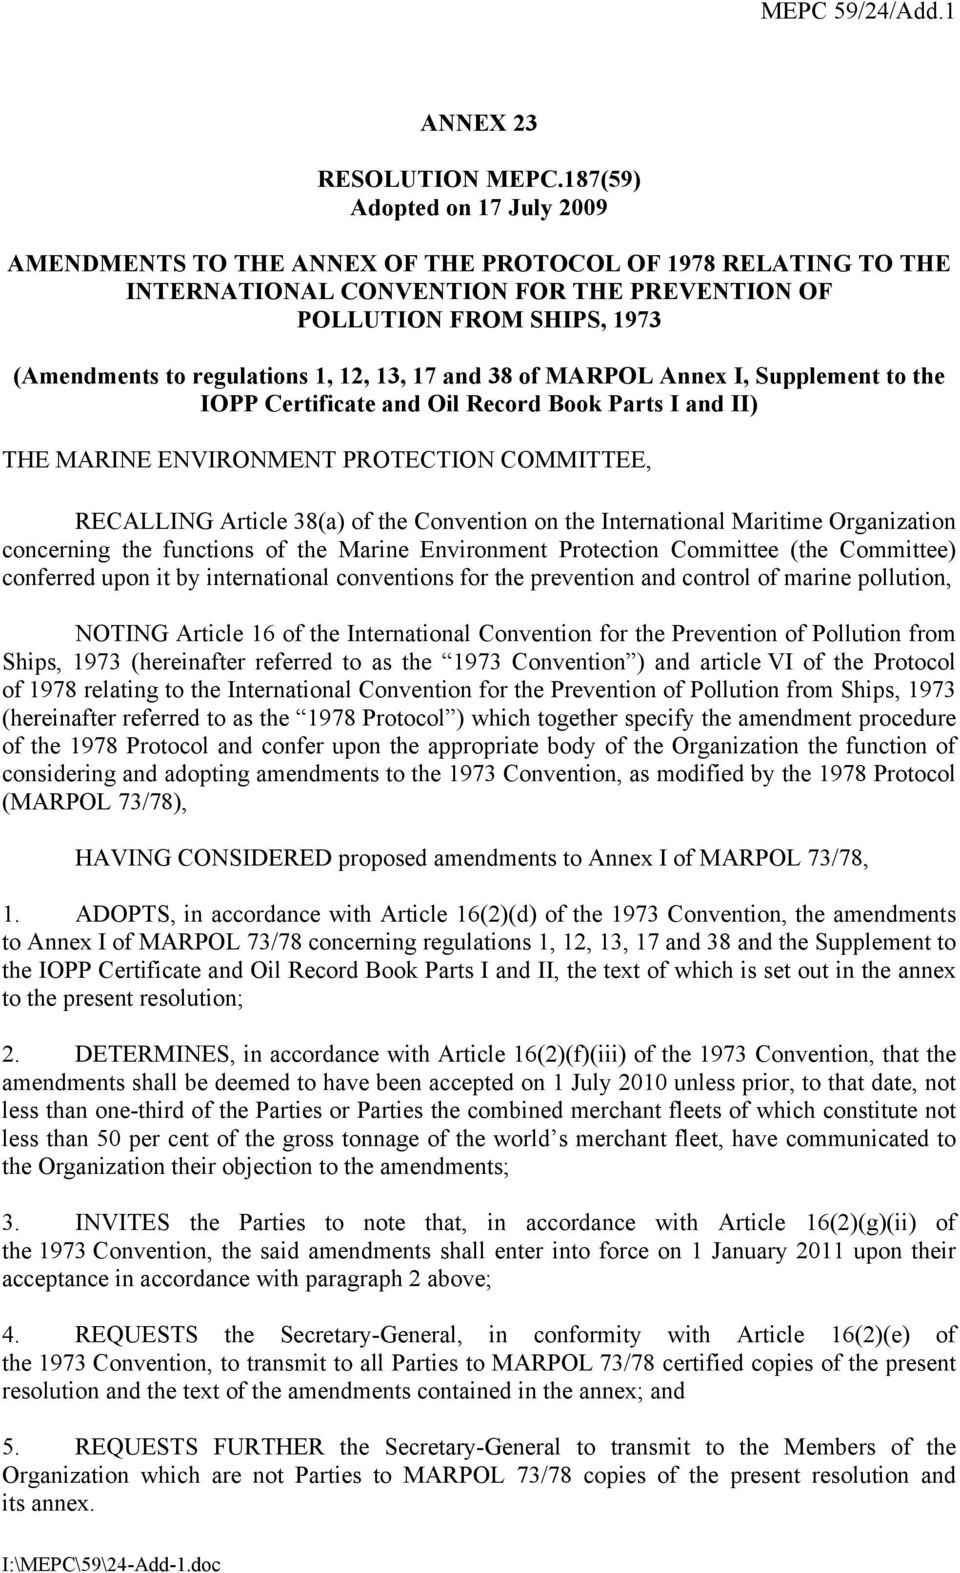 12, 13, 17 and 38 of MARPOL Annex I, Supplement to the IOPP Certificate and Oil Record Book Parts I and II) THE MARINE ENVIRONMENT PROTECTION COMMITTEE, RECALLING Article 38(a) of the Convention on